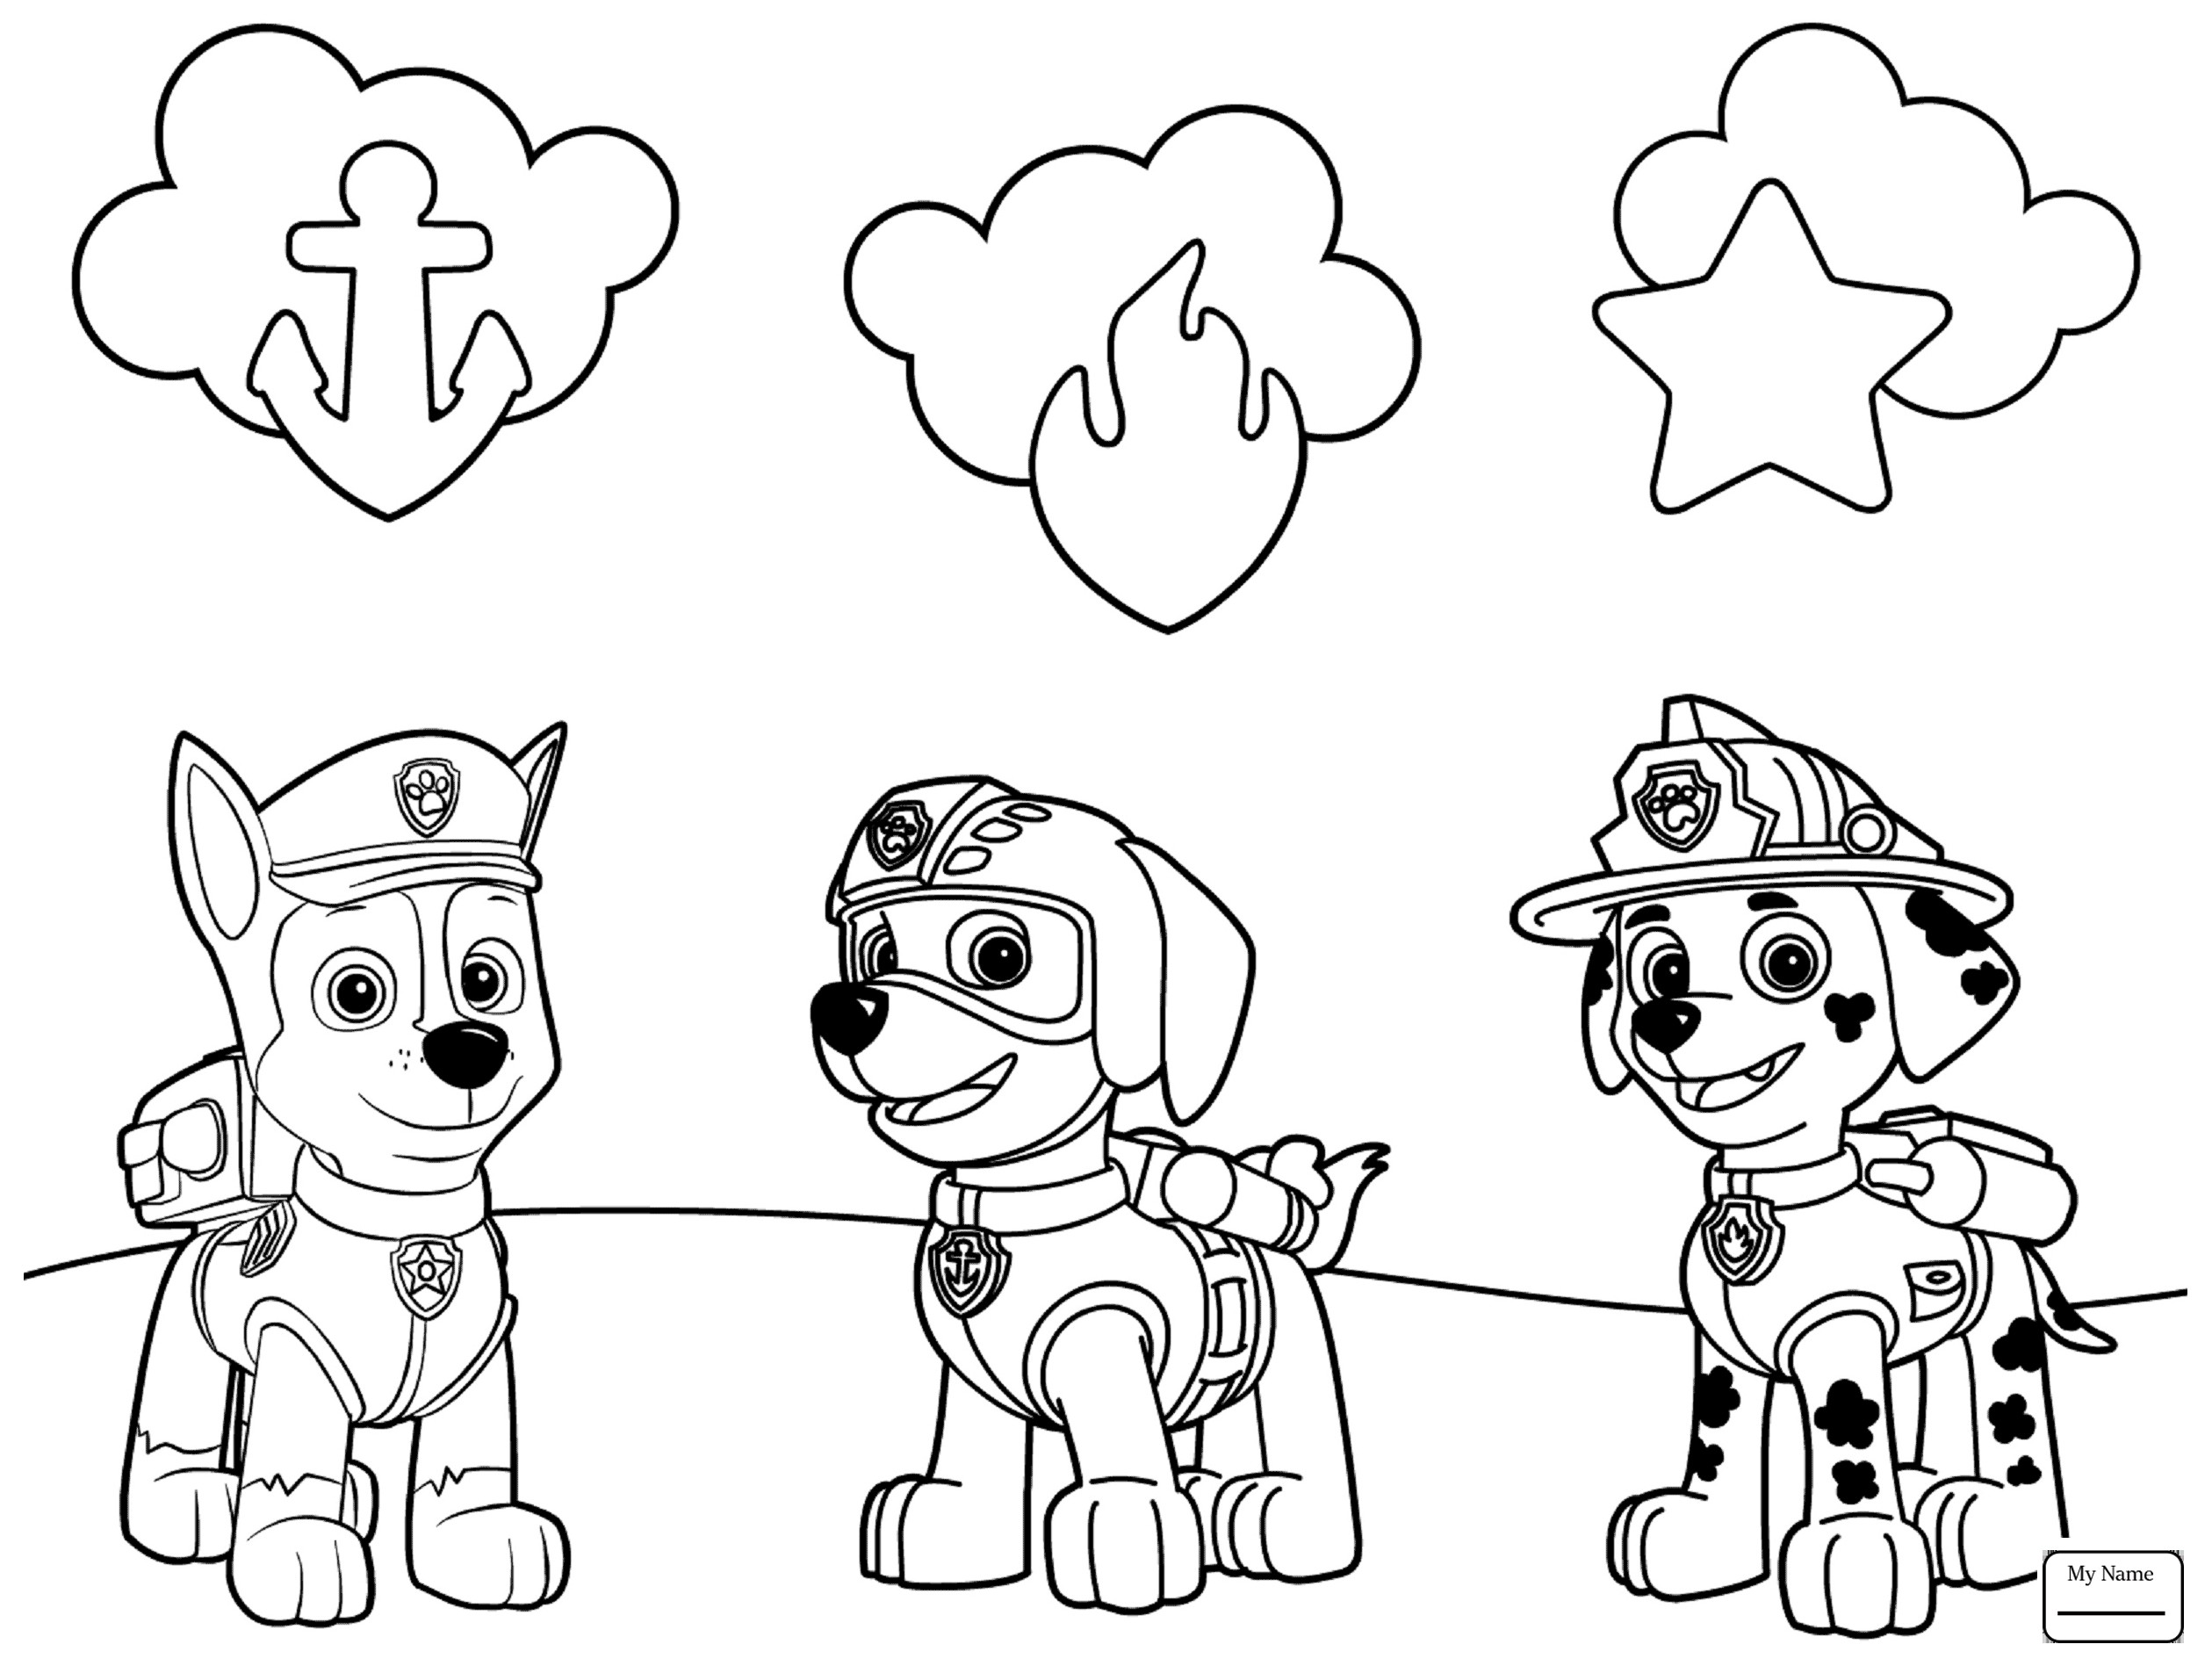 Super Wings Coloring Pages At Getdrawings Com Free For Personal